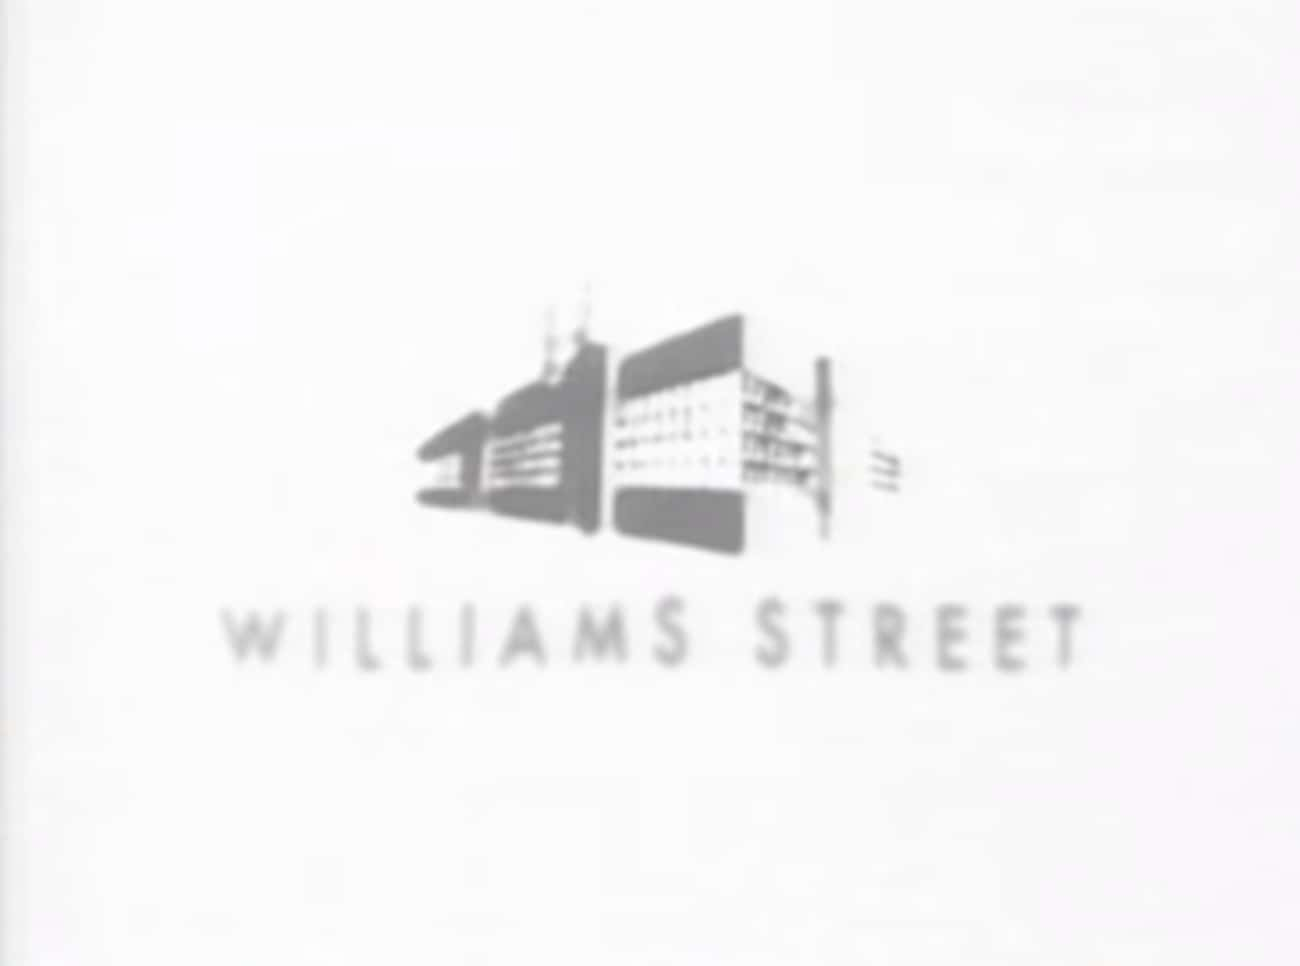 Williams Street Studios Wasn't is listed (or ranked) 1 on the list 28 Behind the Scenes Facts About Adult Swim